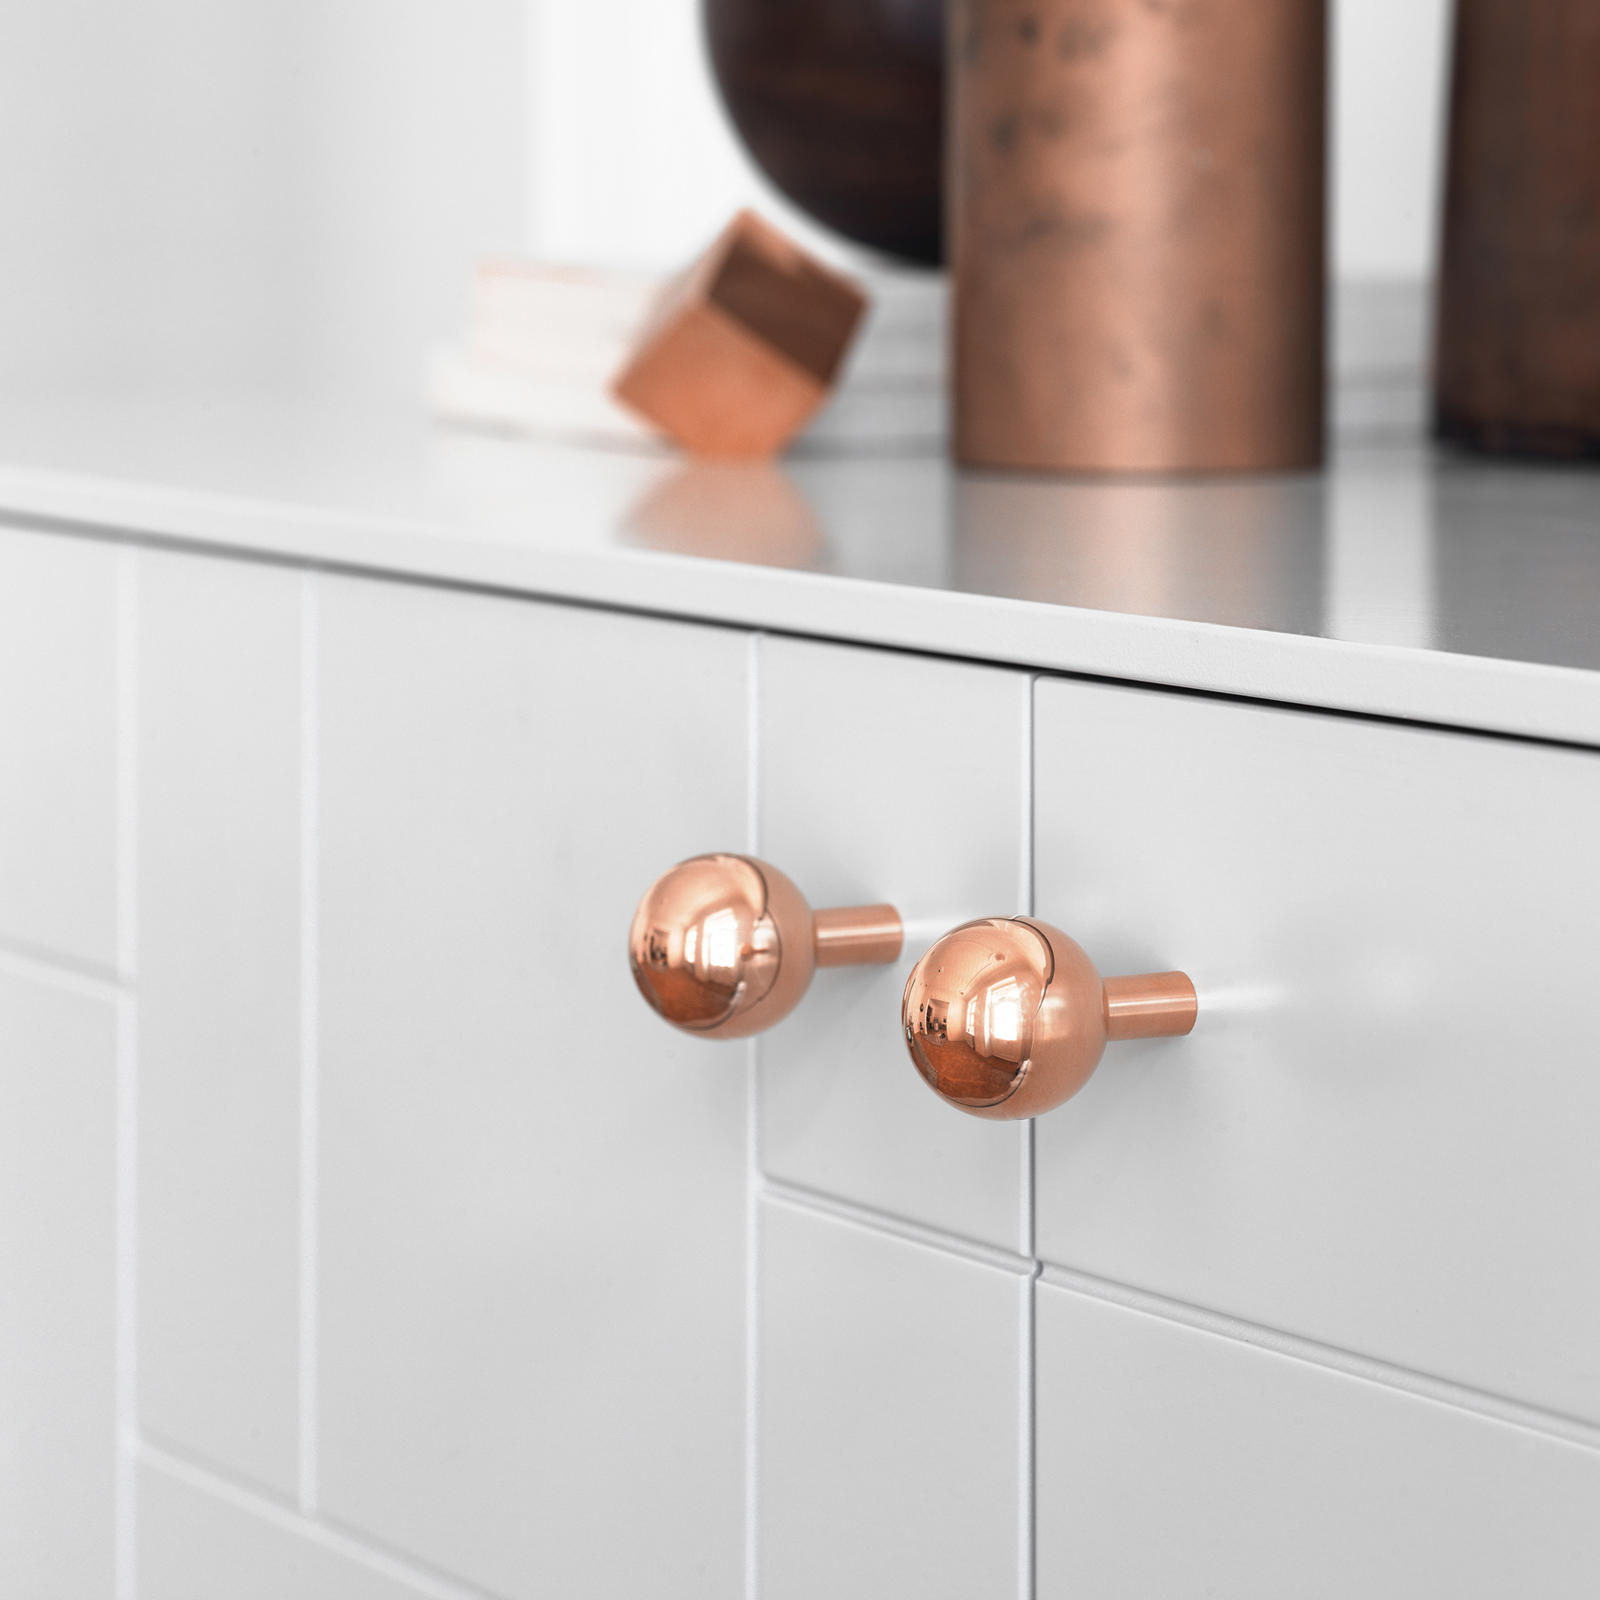 Copper knob on a patterned, light grey front